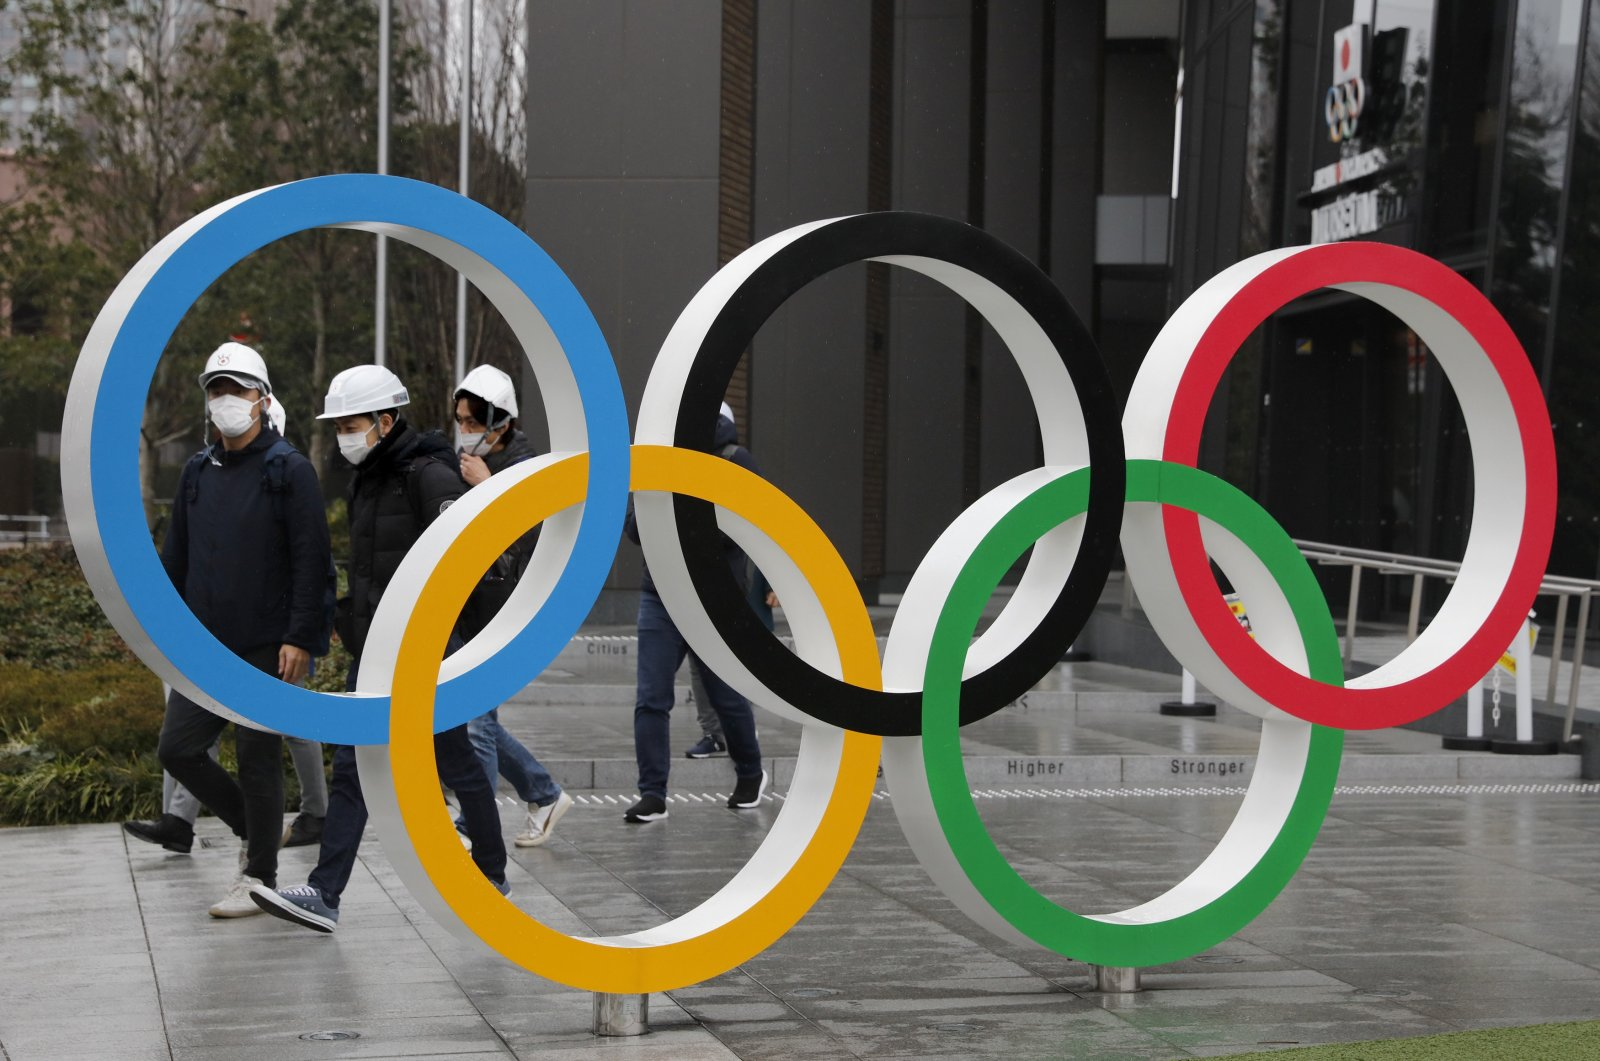 People wearing masks walk past the Olympic rings near the New National Stadium in Tokyo, Japan, March 4, 2020. (AP Photo)